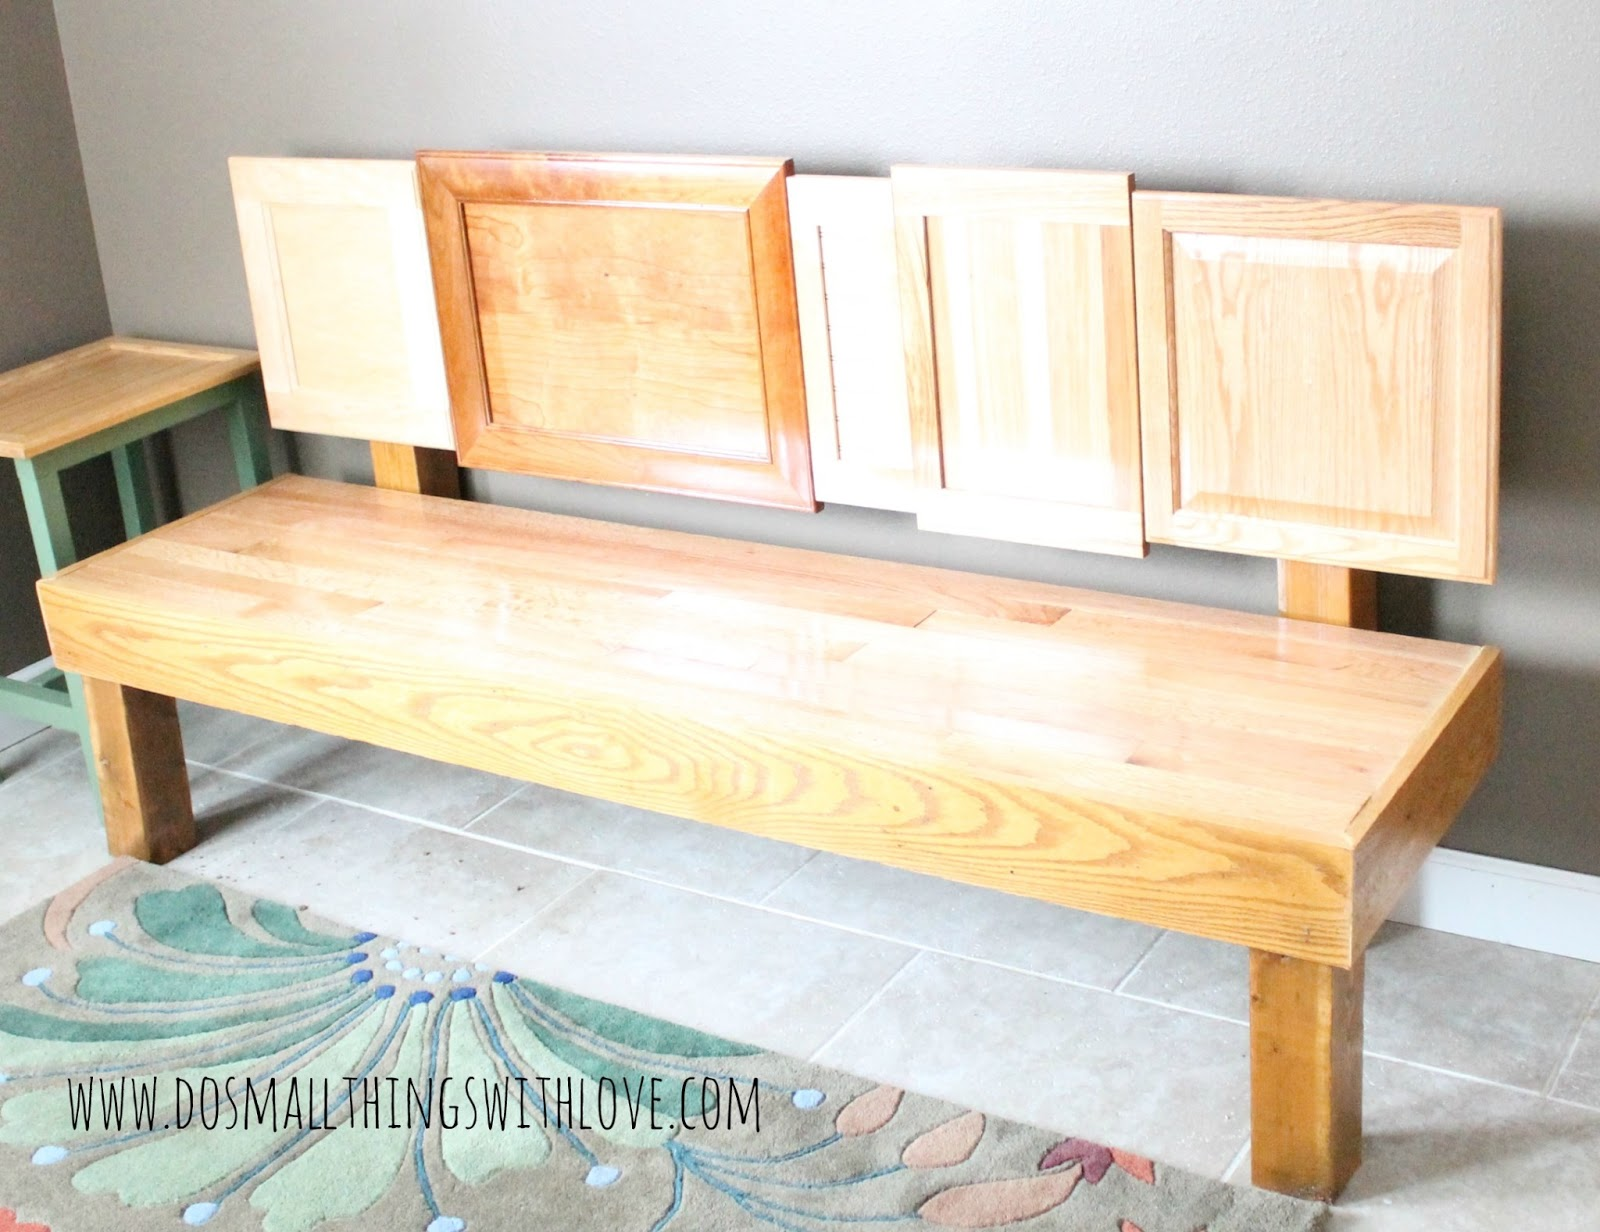 DIY Cabinet Door Bench  Do Small Things with Great Love